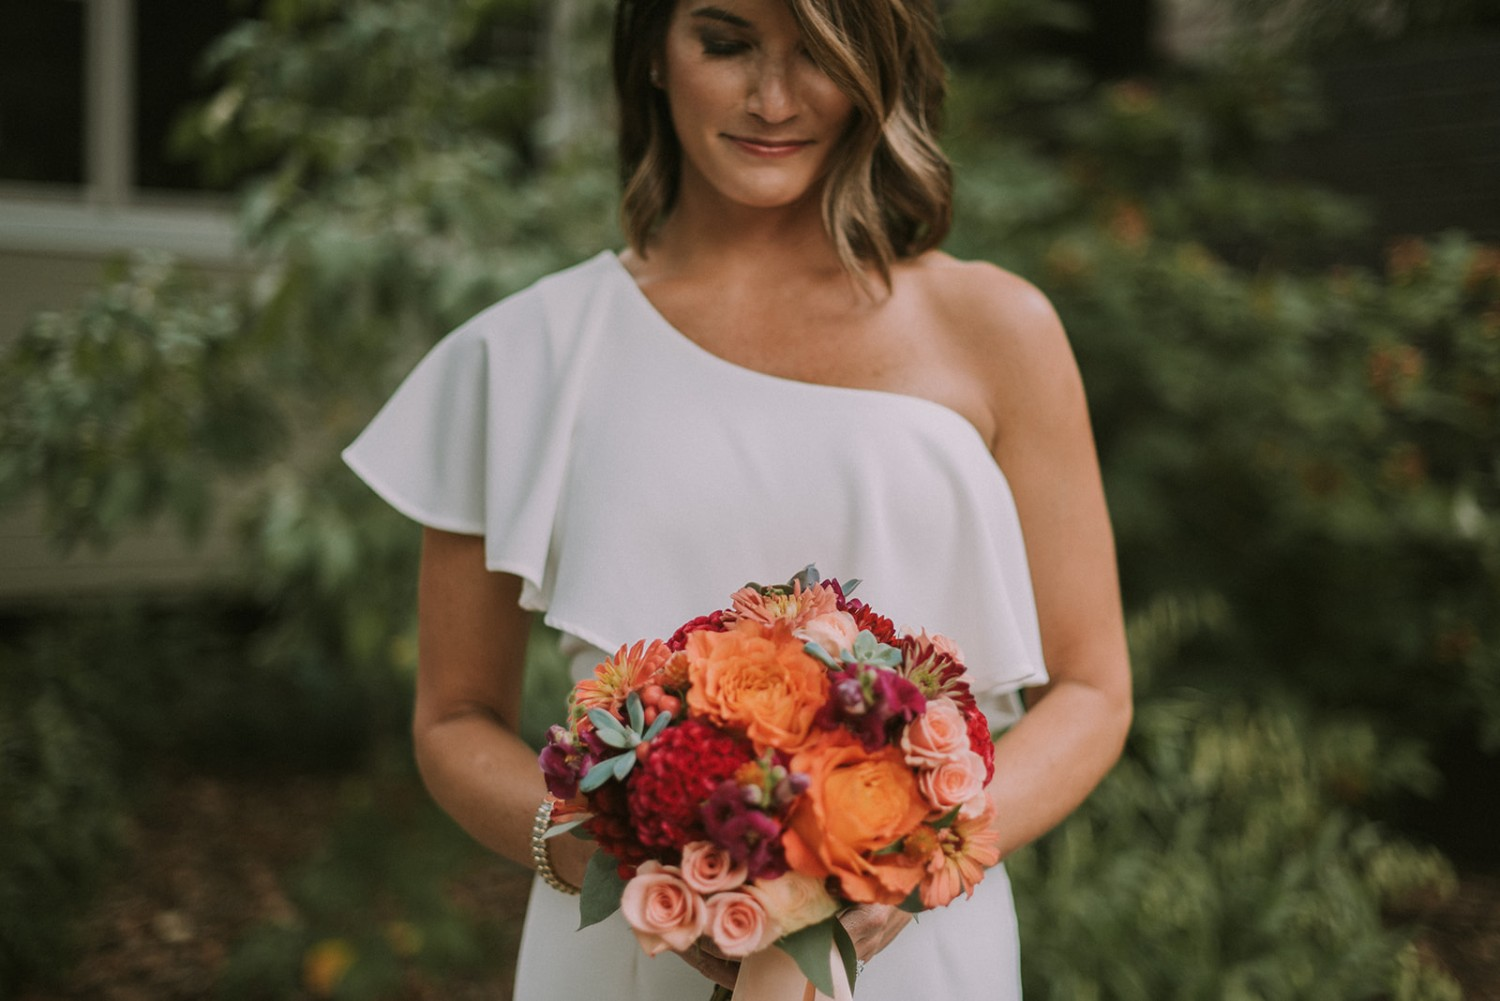 Vibrant Backyard Wedding Bouquet, Rose of Sharon Floral Design Studio, Fayetteville, Arkansas